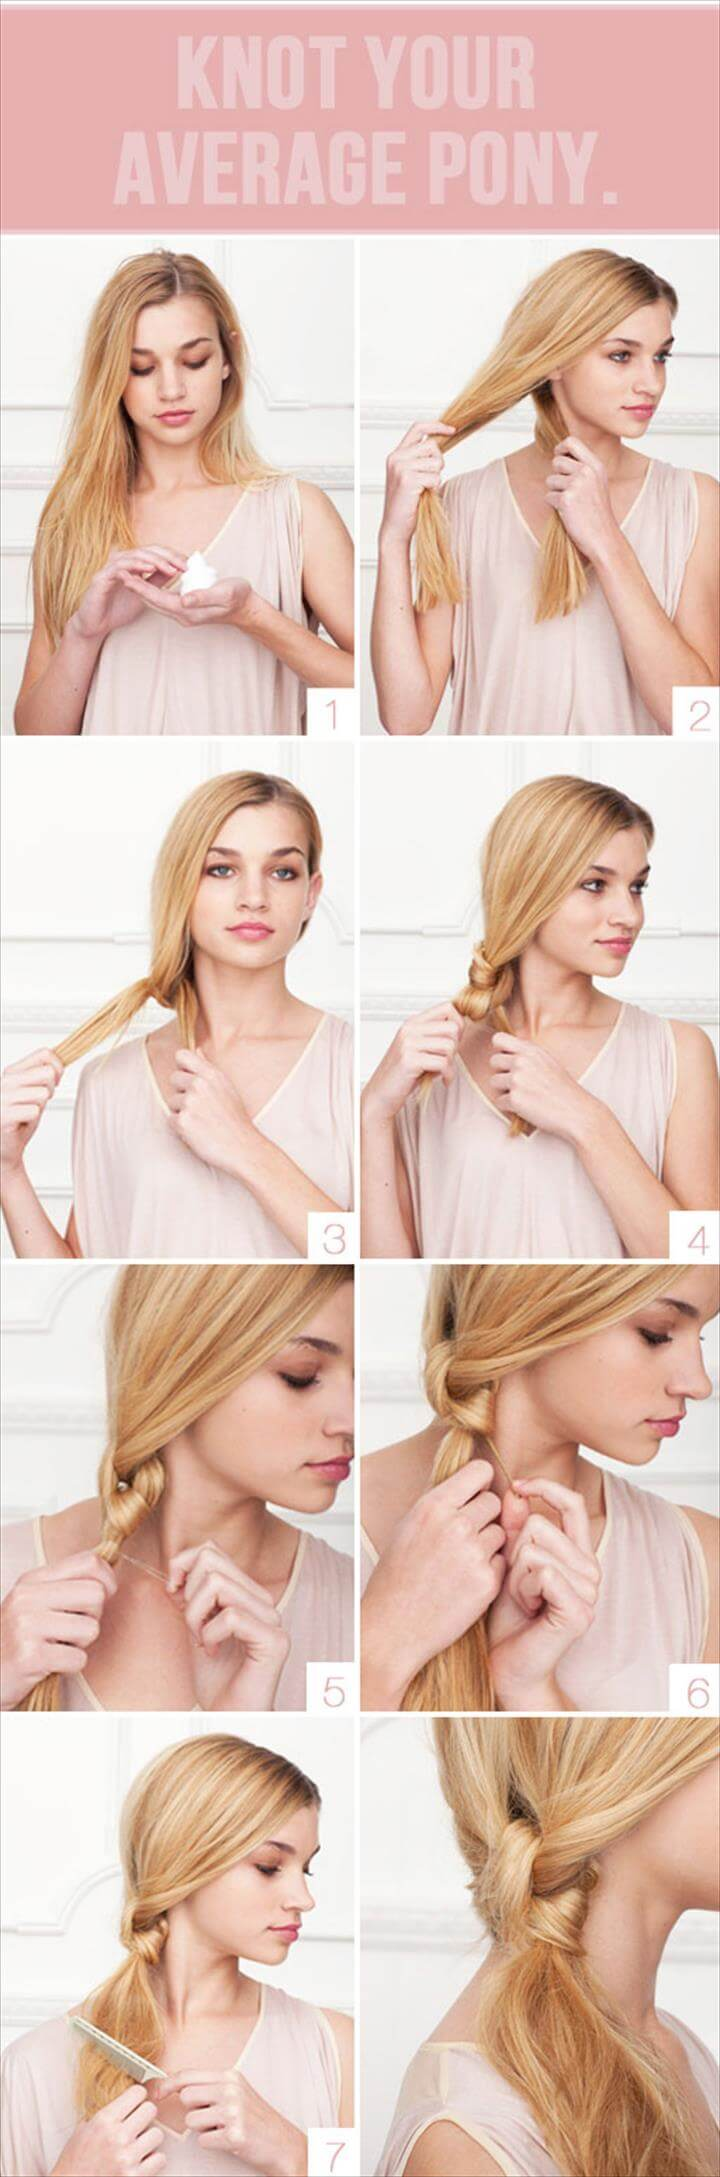 cute average pony knot hairstyle